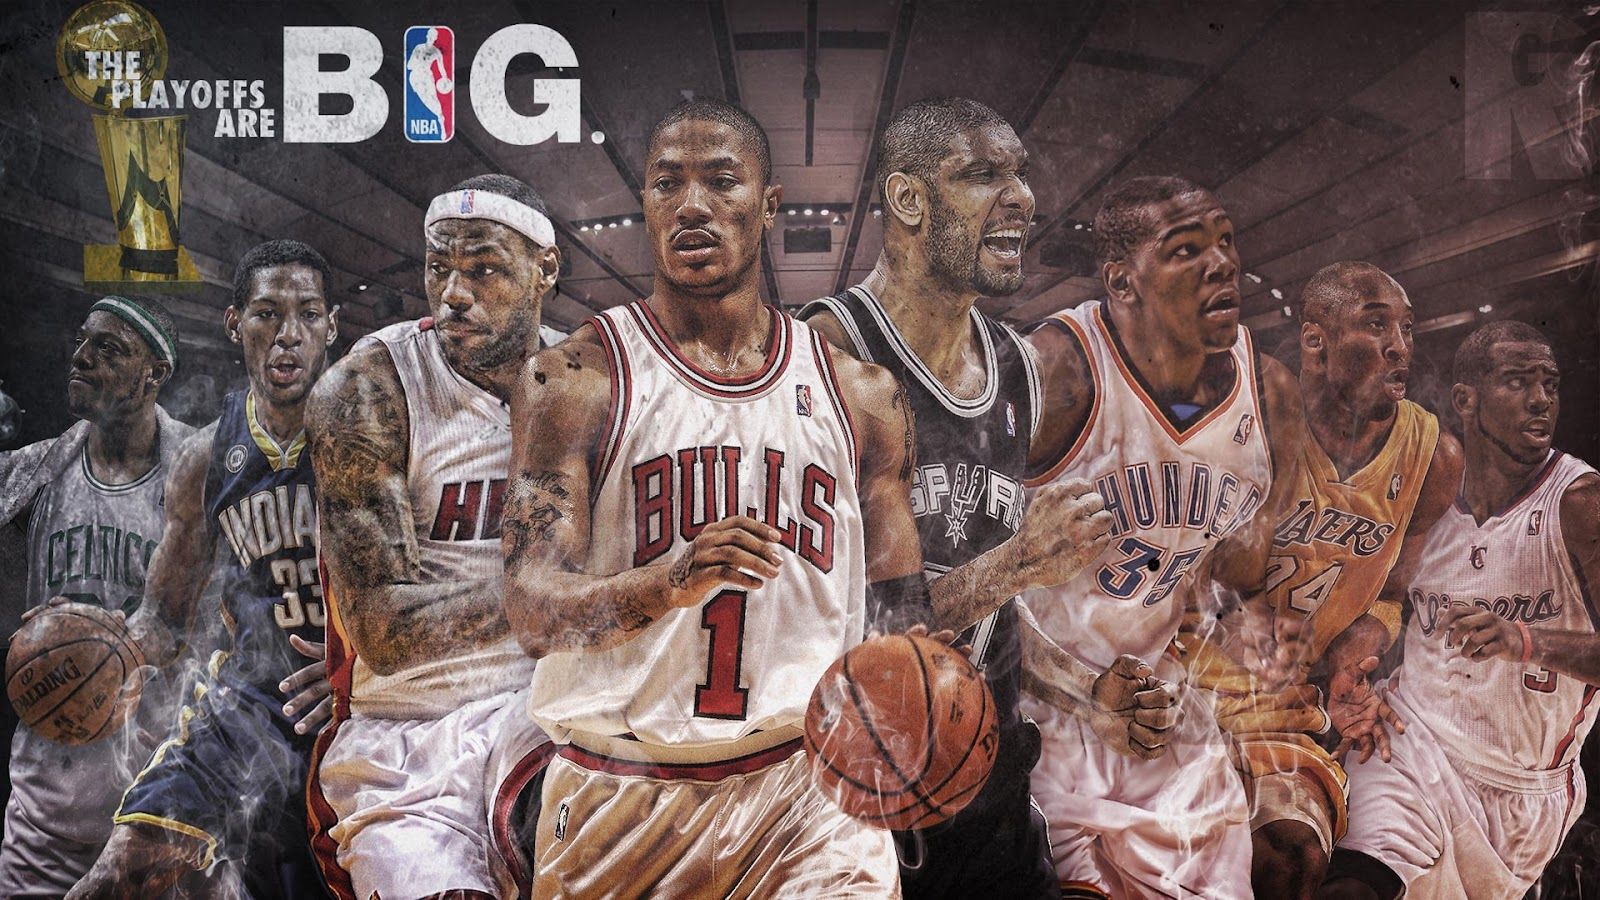 http://1.bp.blogspot.com/-A-vWaxanQjQ/T6j8zl2RCfI/AAAAAAAARi4/EXibX1OUDRQ/s1600/2012-NBA-Playoffs-Stars-1920x1080-Wallpaper-BasketWallpapers.com-.jpg